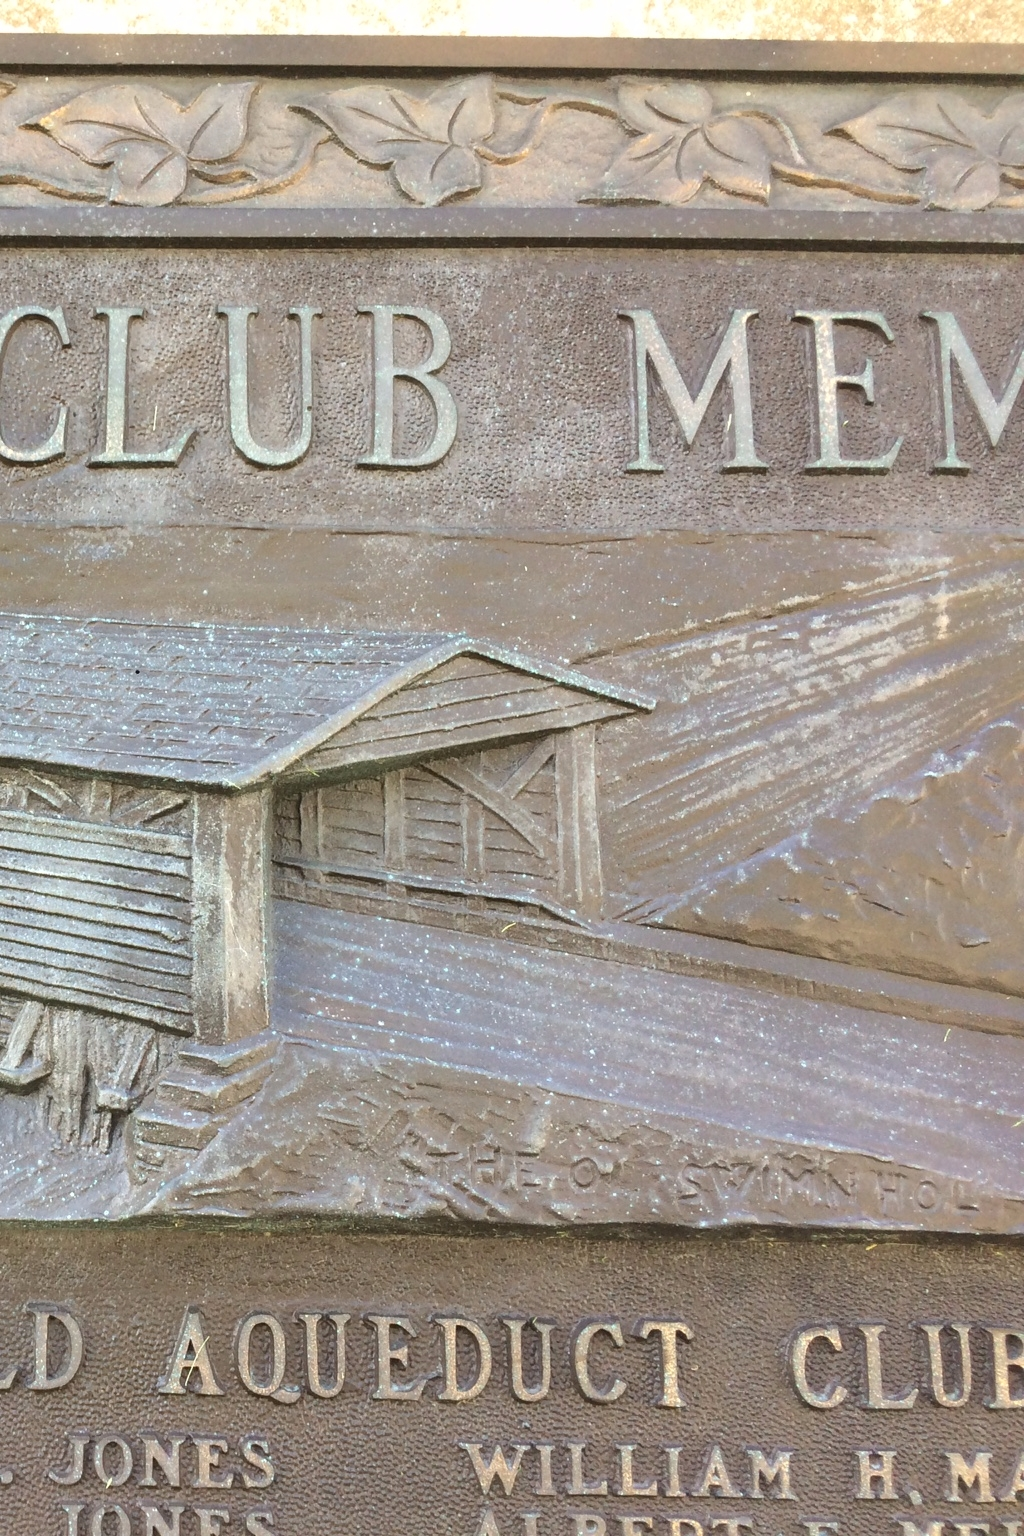 Old Aqueduct Club Memorial Marker